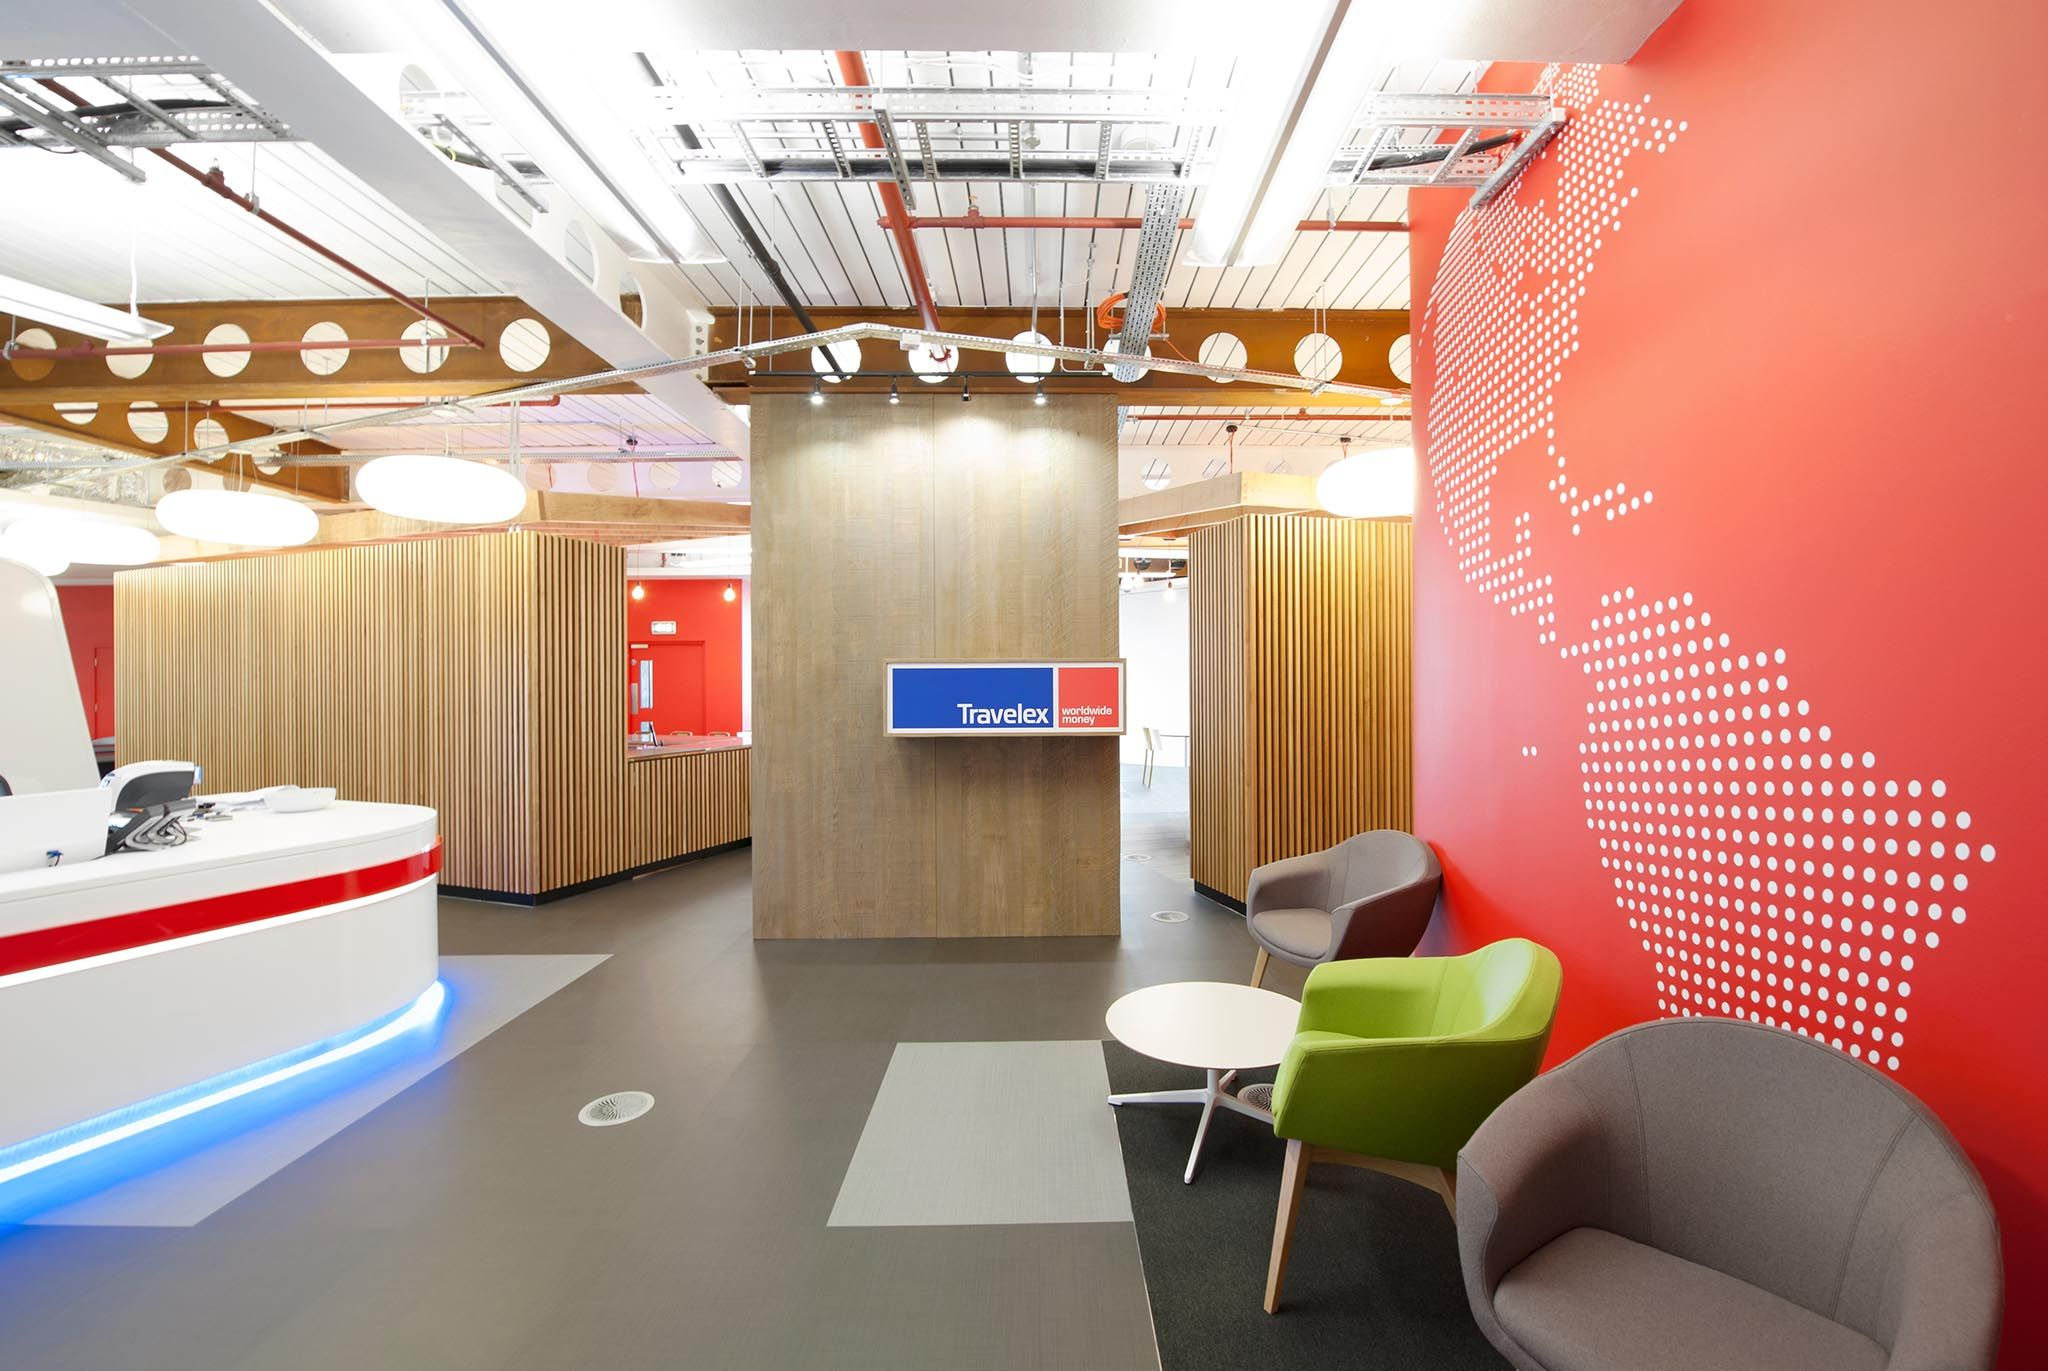 office interior designers london. The Case Study For Office Design And Officr Relocation Project Travelex In London. Undertaken By Workplace Experts, Maris Interiors. Interior Designers London I